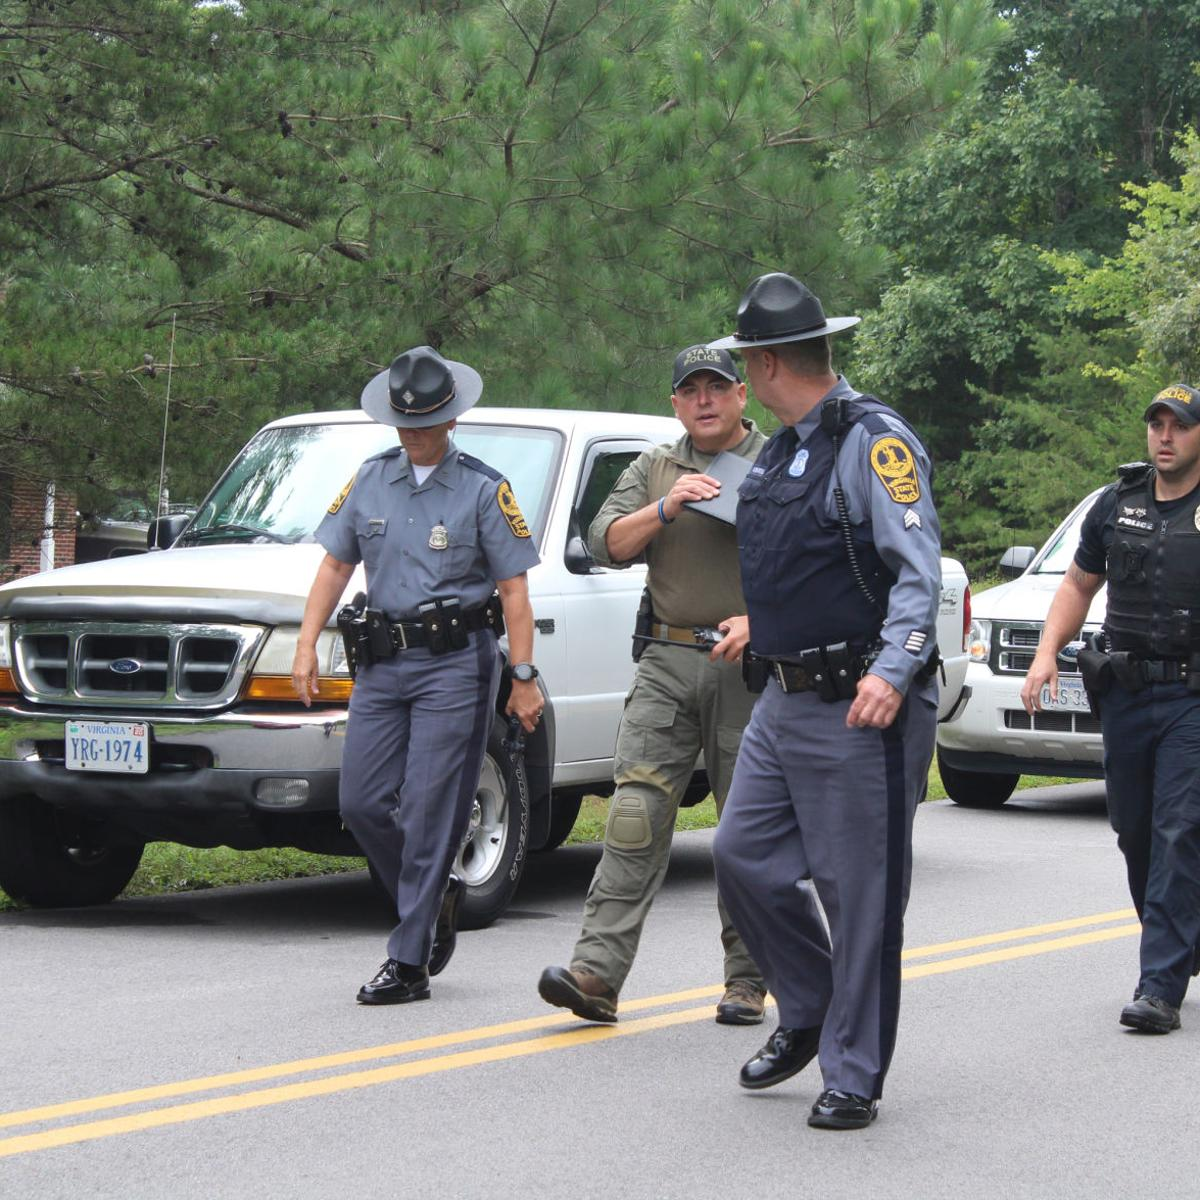 UPDATED: Triple homicide in Pittsylvania 'a shock to the